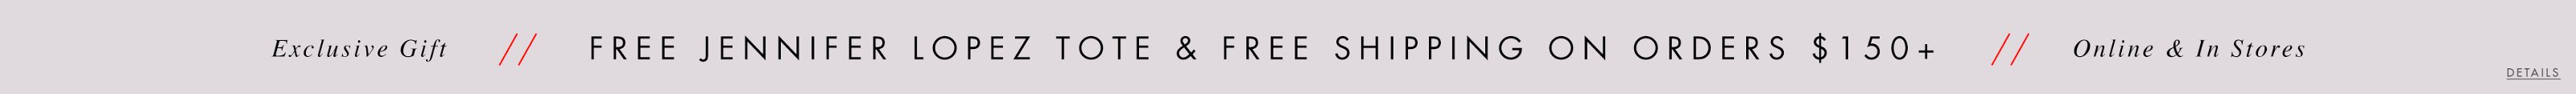 Free Jennifer Lopez Tote & Free shipping on order $150